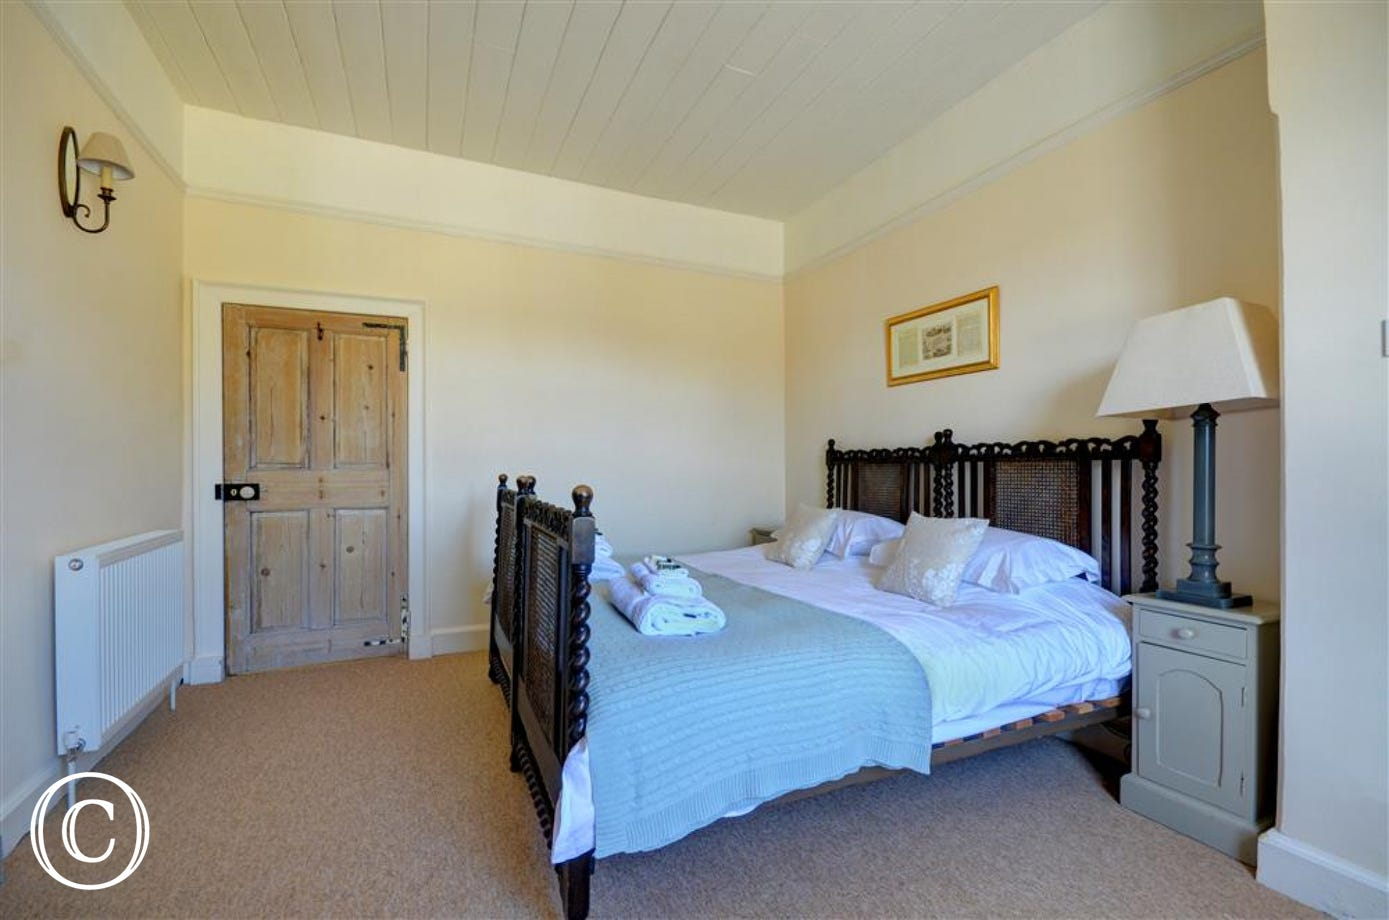 Bedroom two has twin beds which can also be converted into a king sized bed